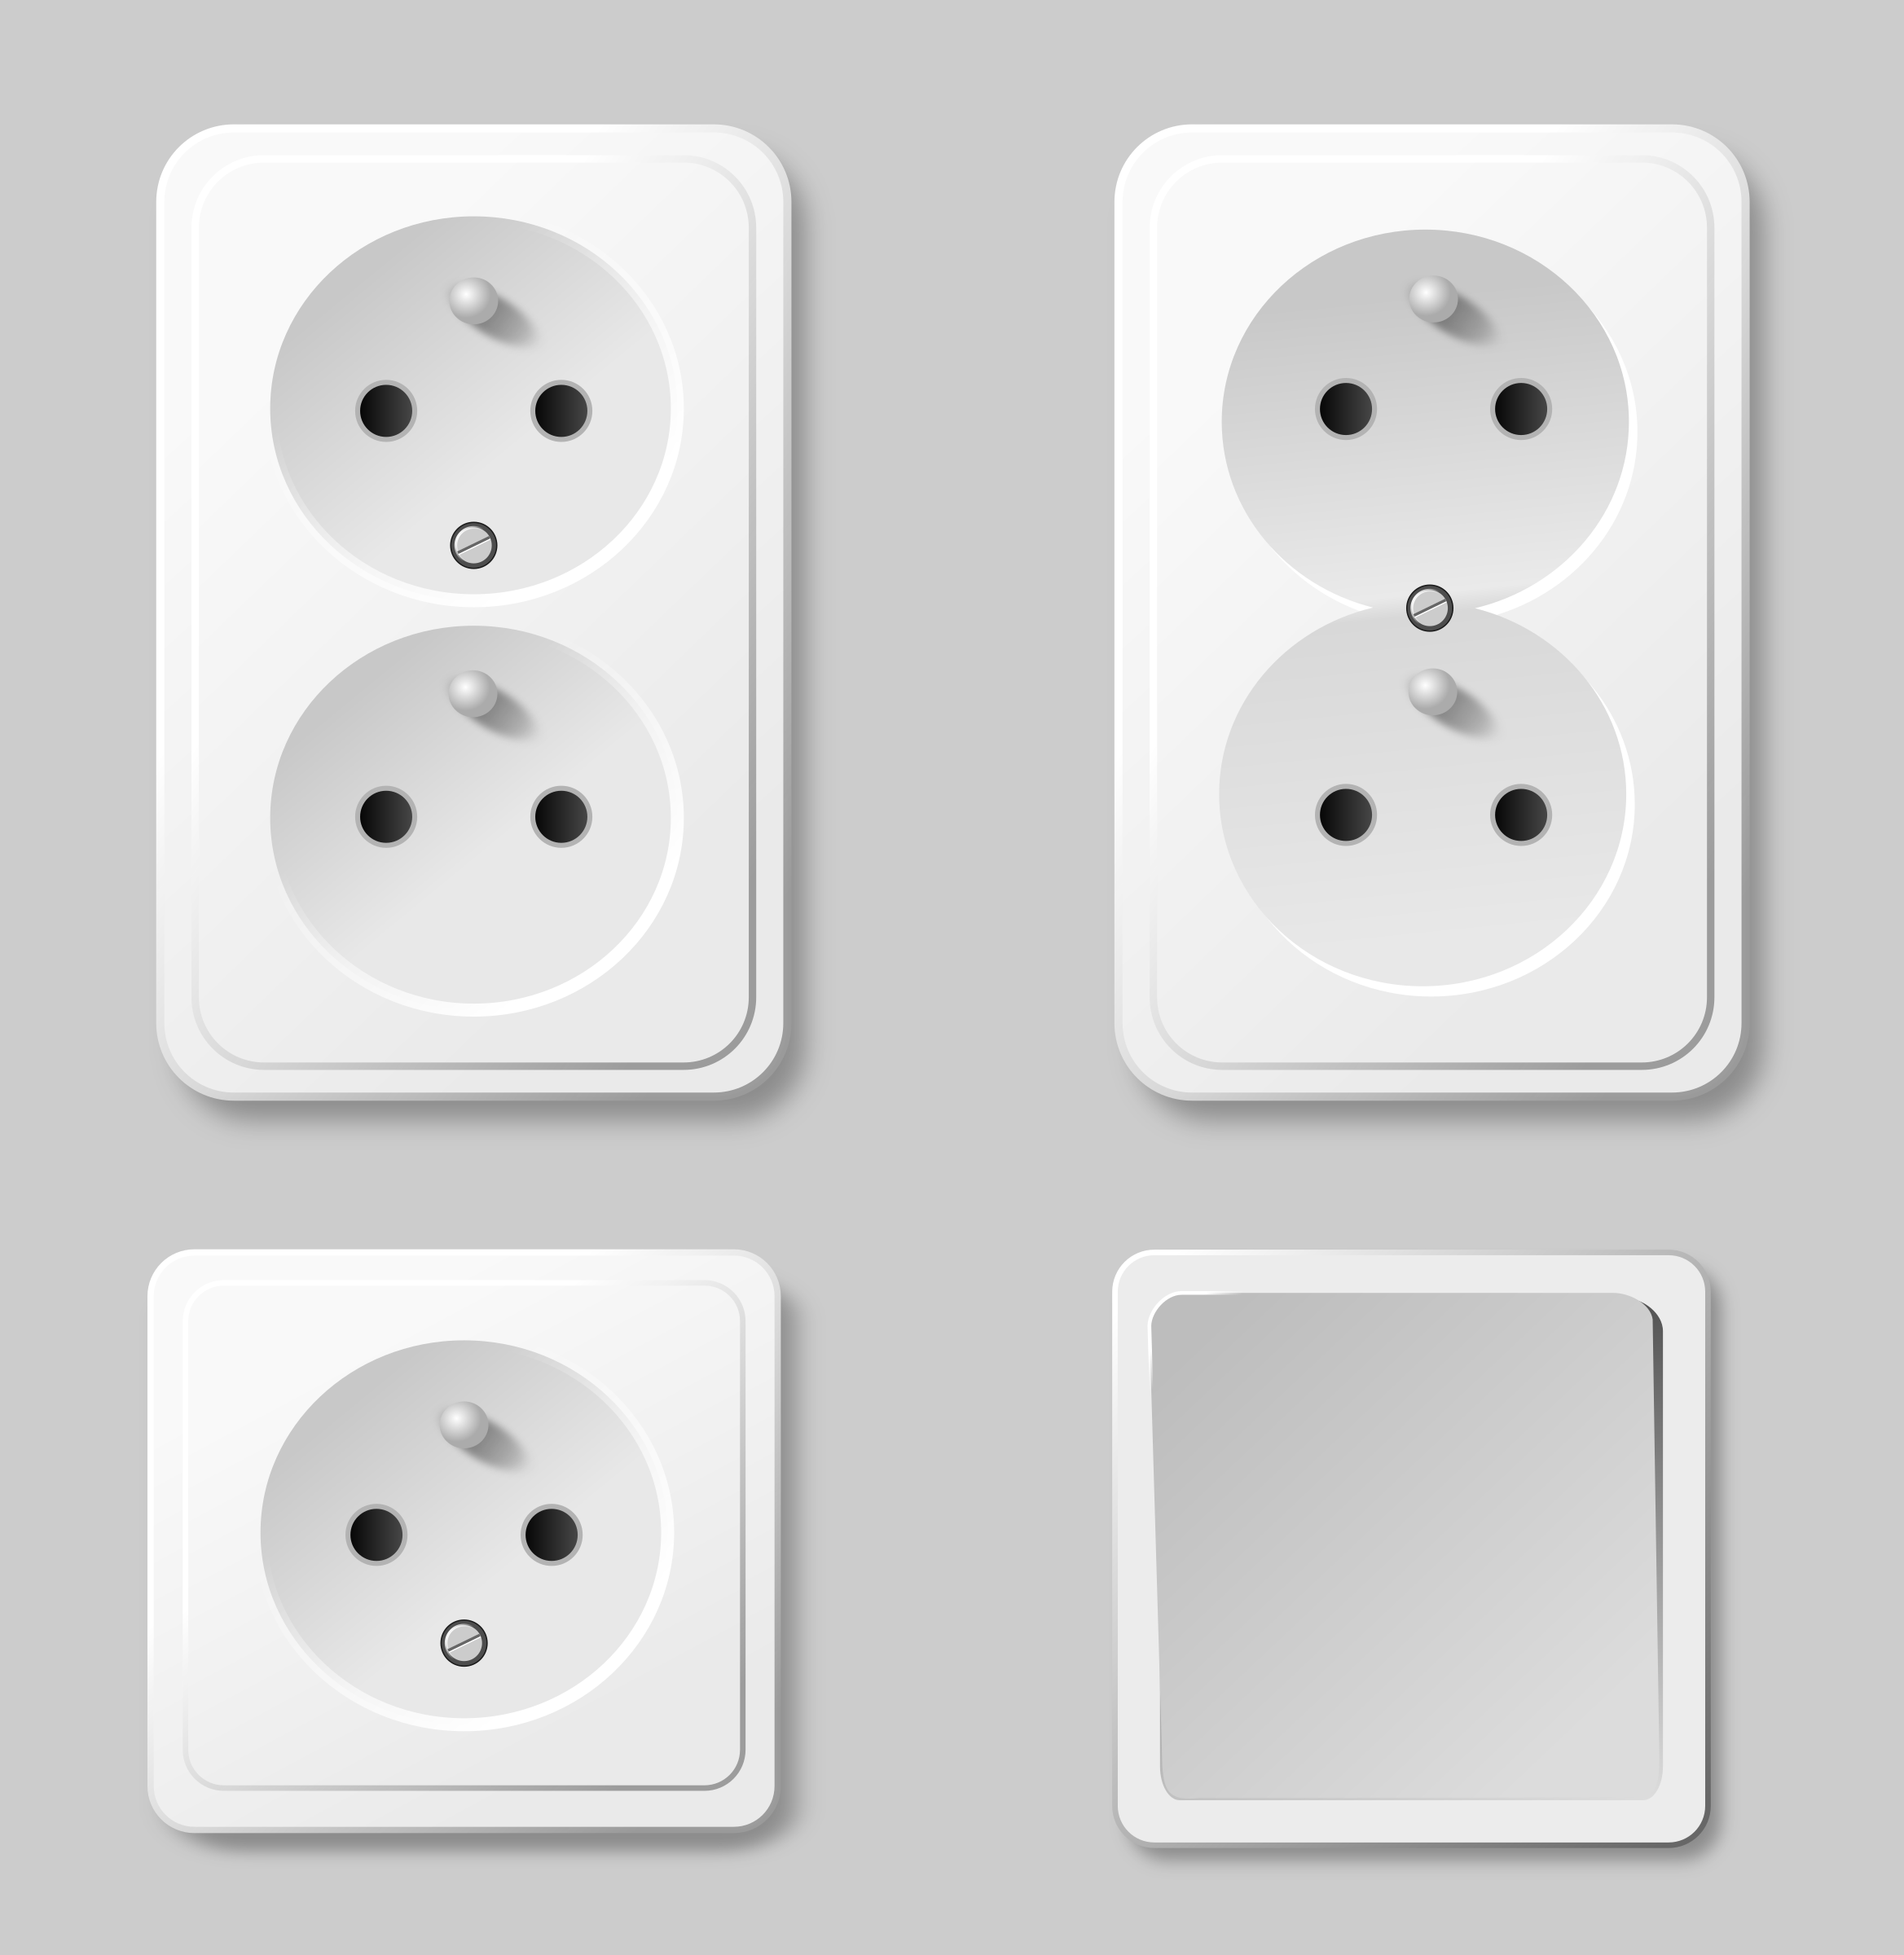 sockets by jarda